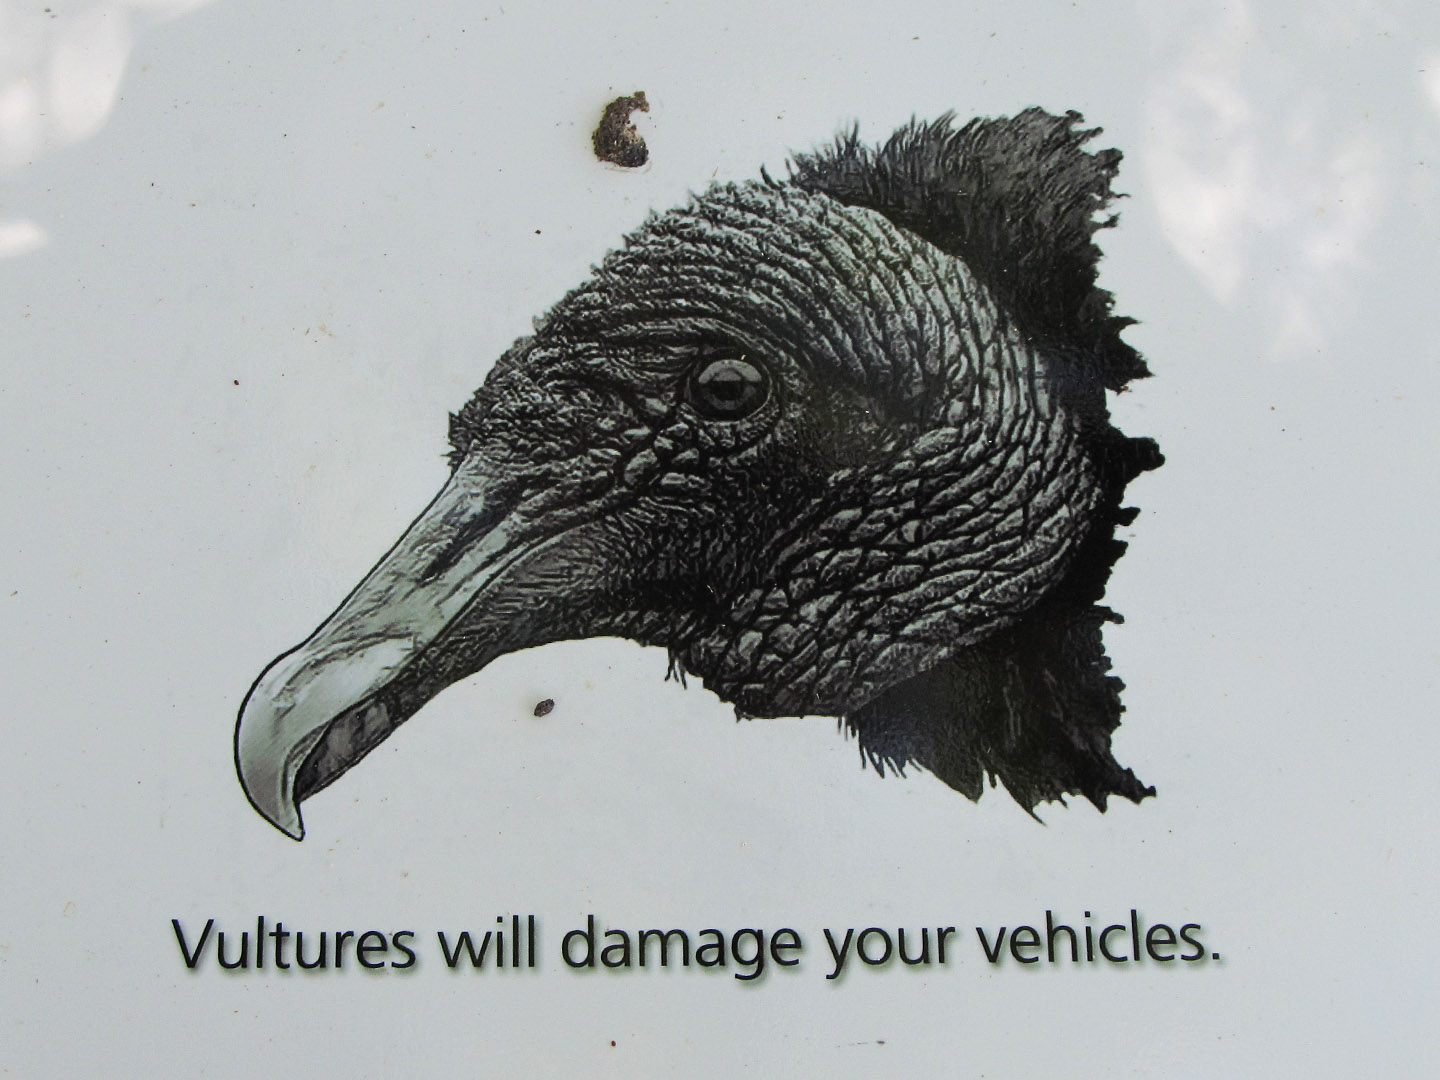 Vultures will damage your vehicles